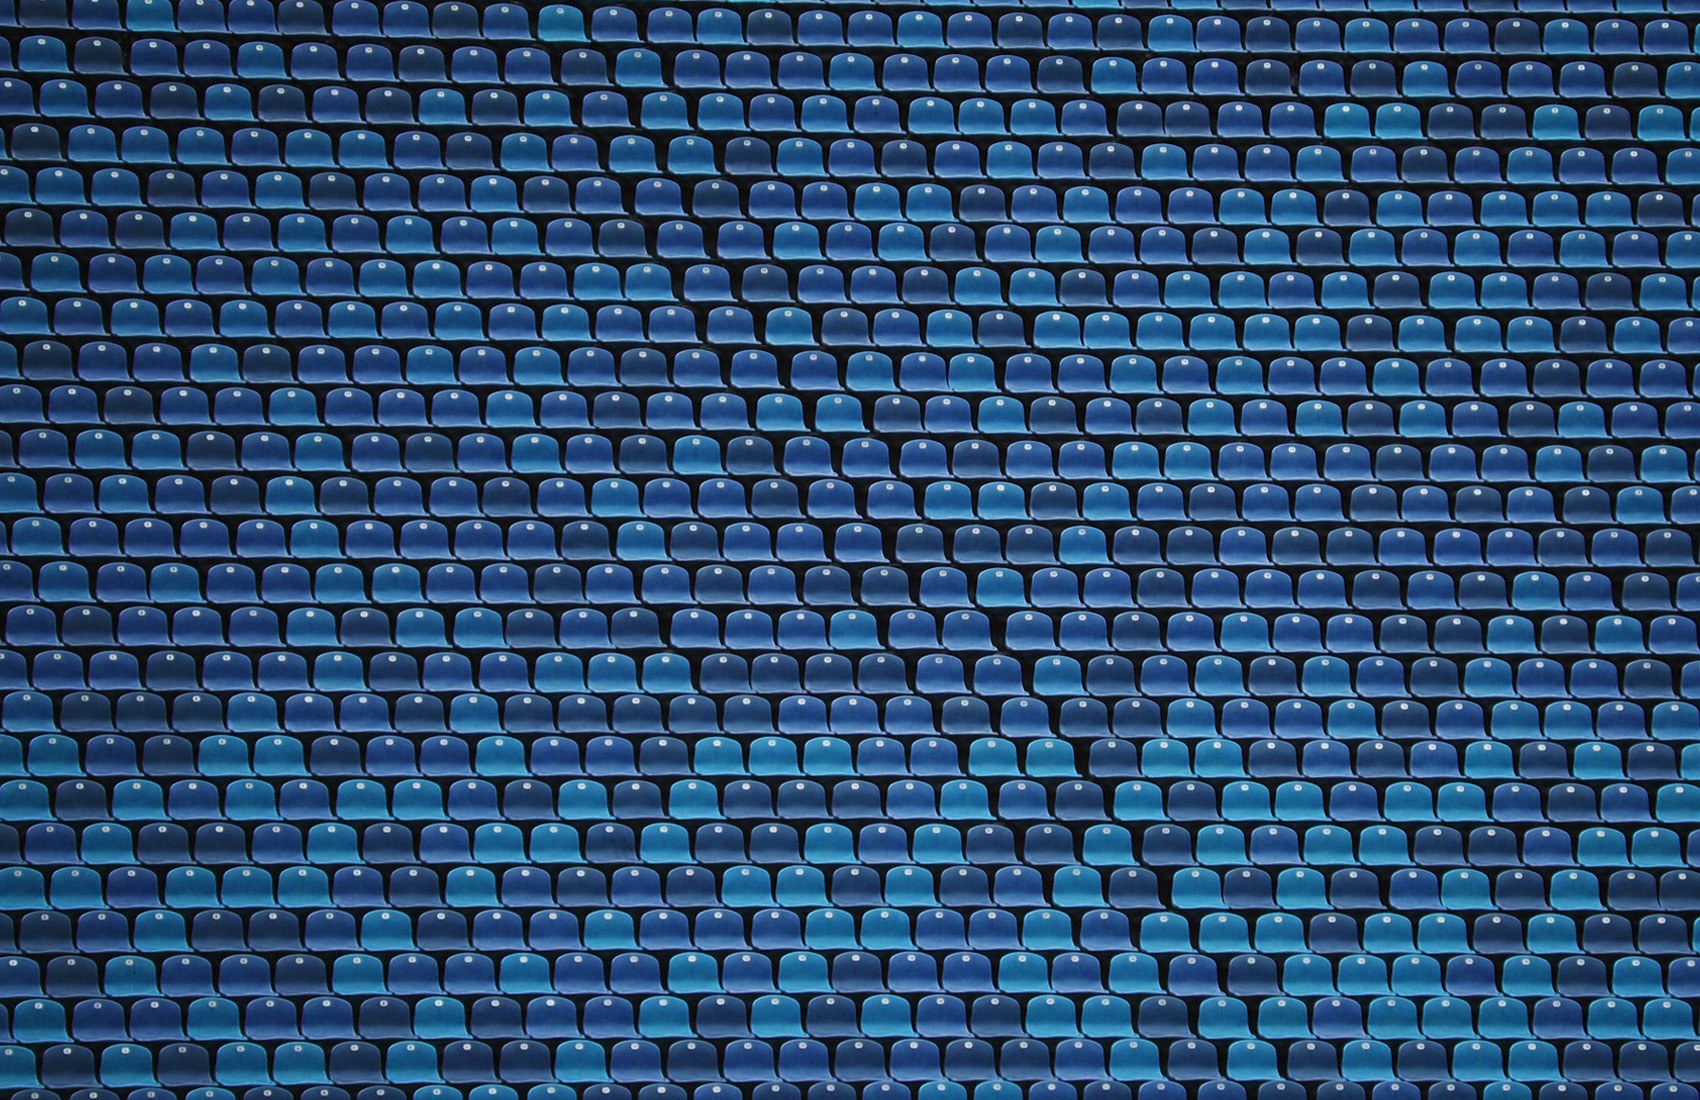 Why Stadium Seating? - Fan seating in stadiums and arenas constitutes huge amounts of plastic material. Due to the strenuous wear & tear that these products endure, they are often replaced multiple times in the life of the venue creating thousands of tons of physical waste.